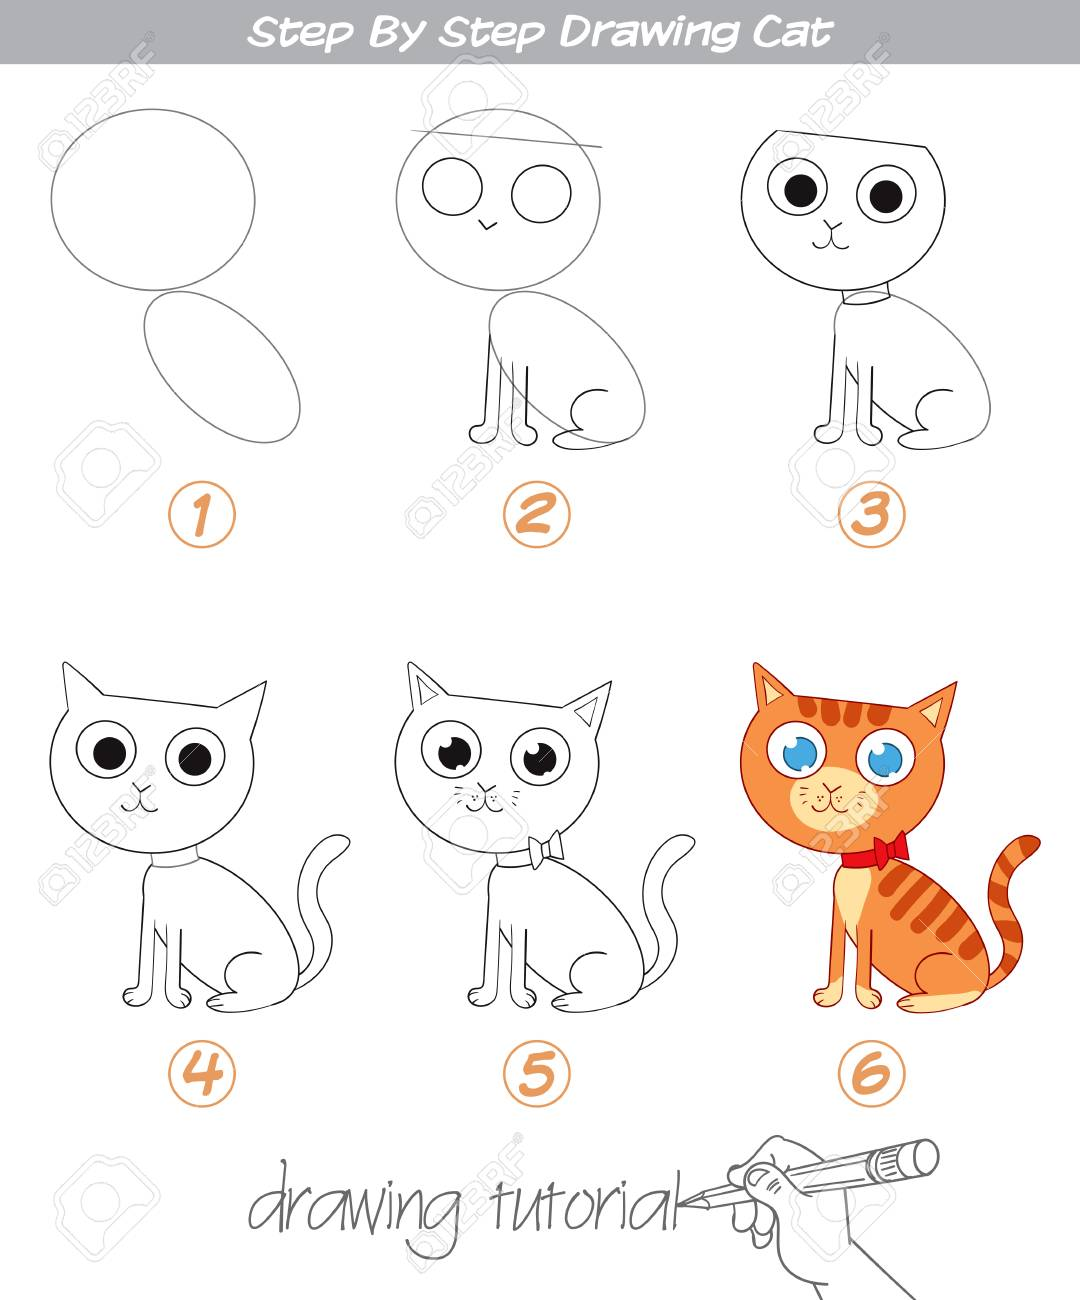 Drawing Tutorial Step By Step Drawing Cat Easy To Drawing Cat